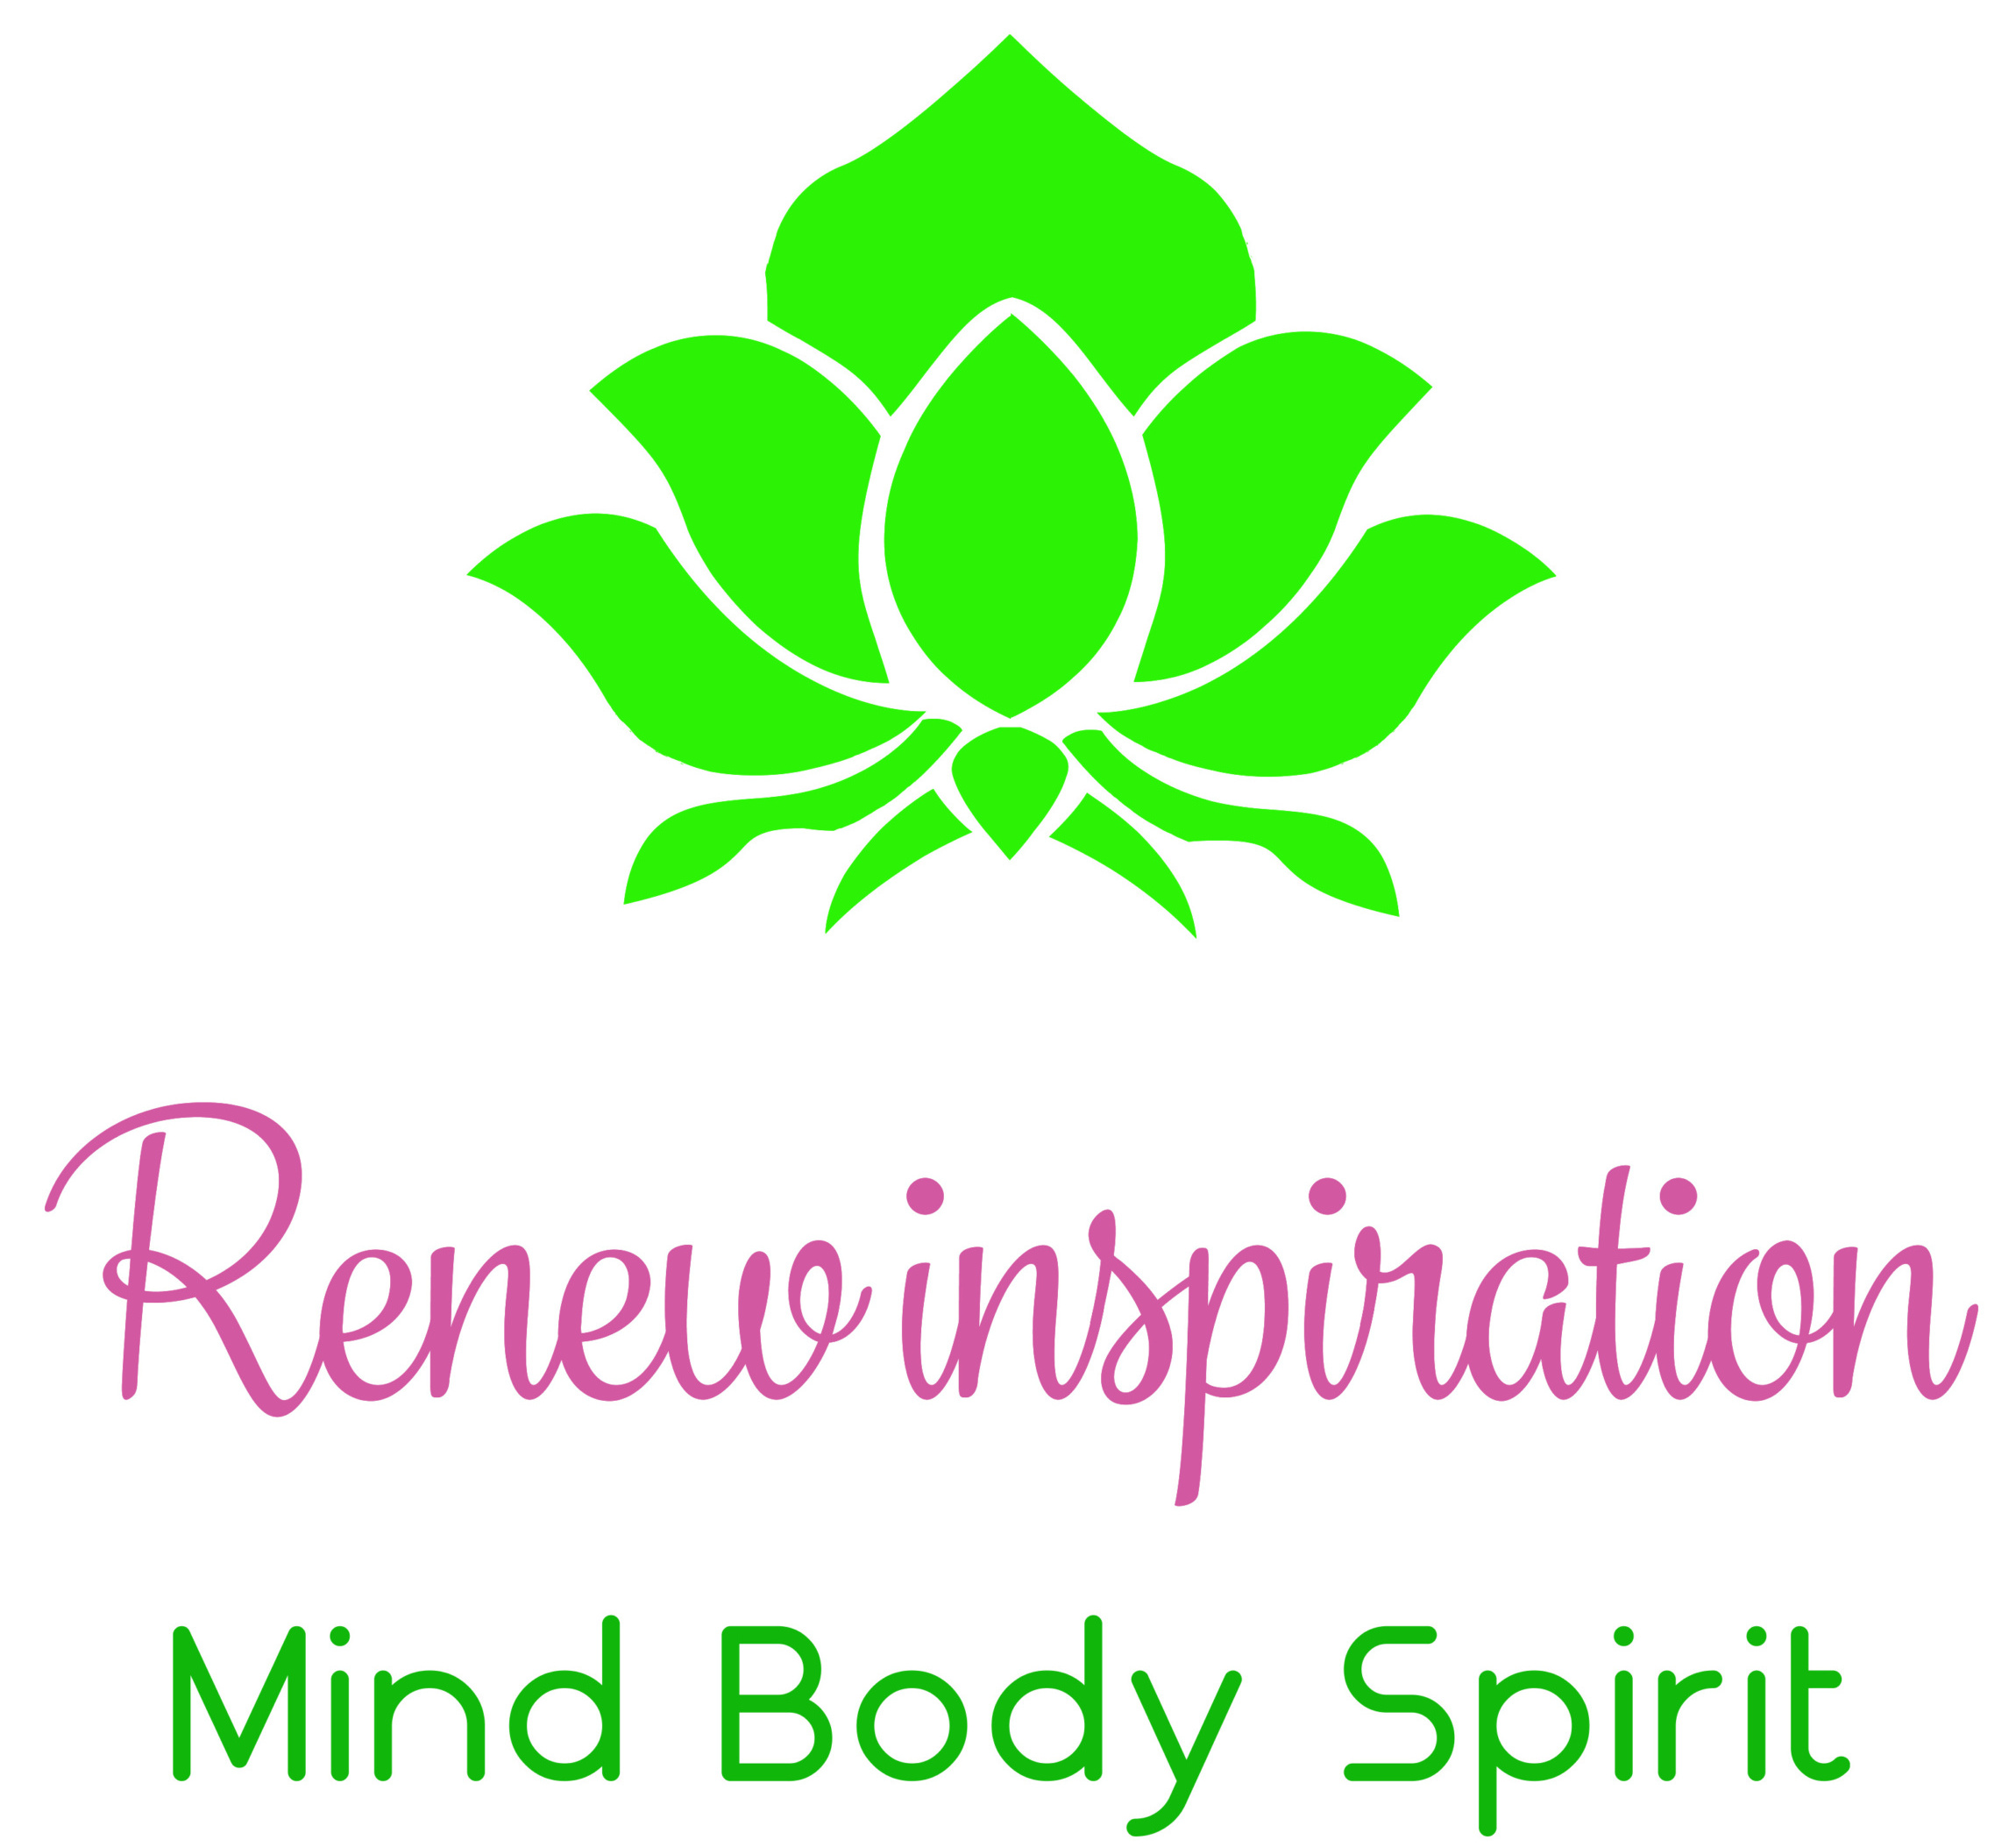 Renew Inspiration Mind Body Spirit